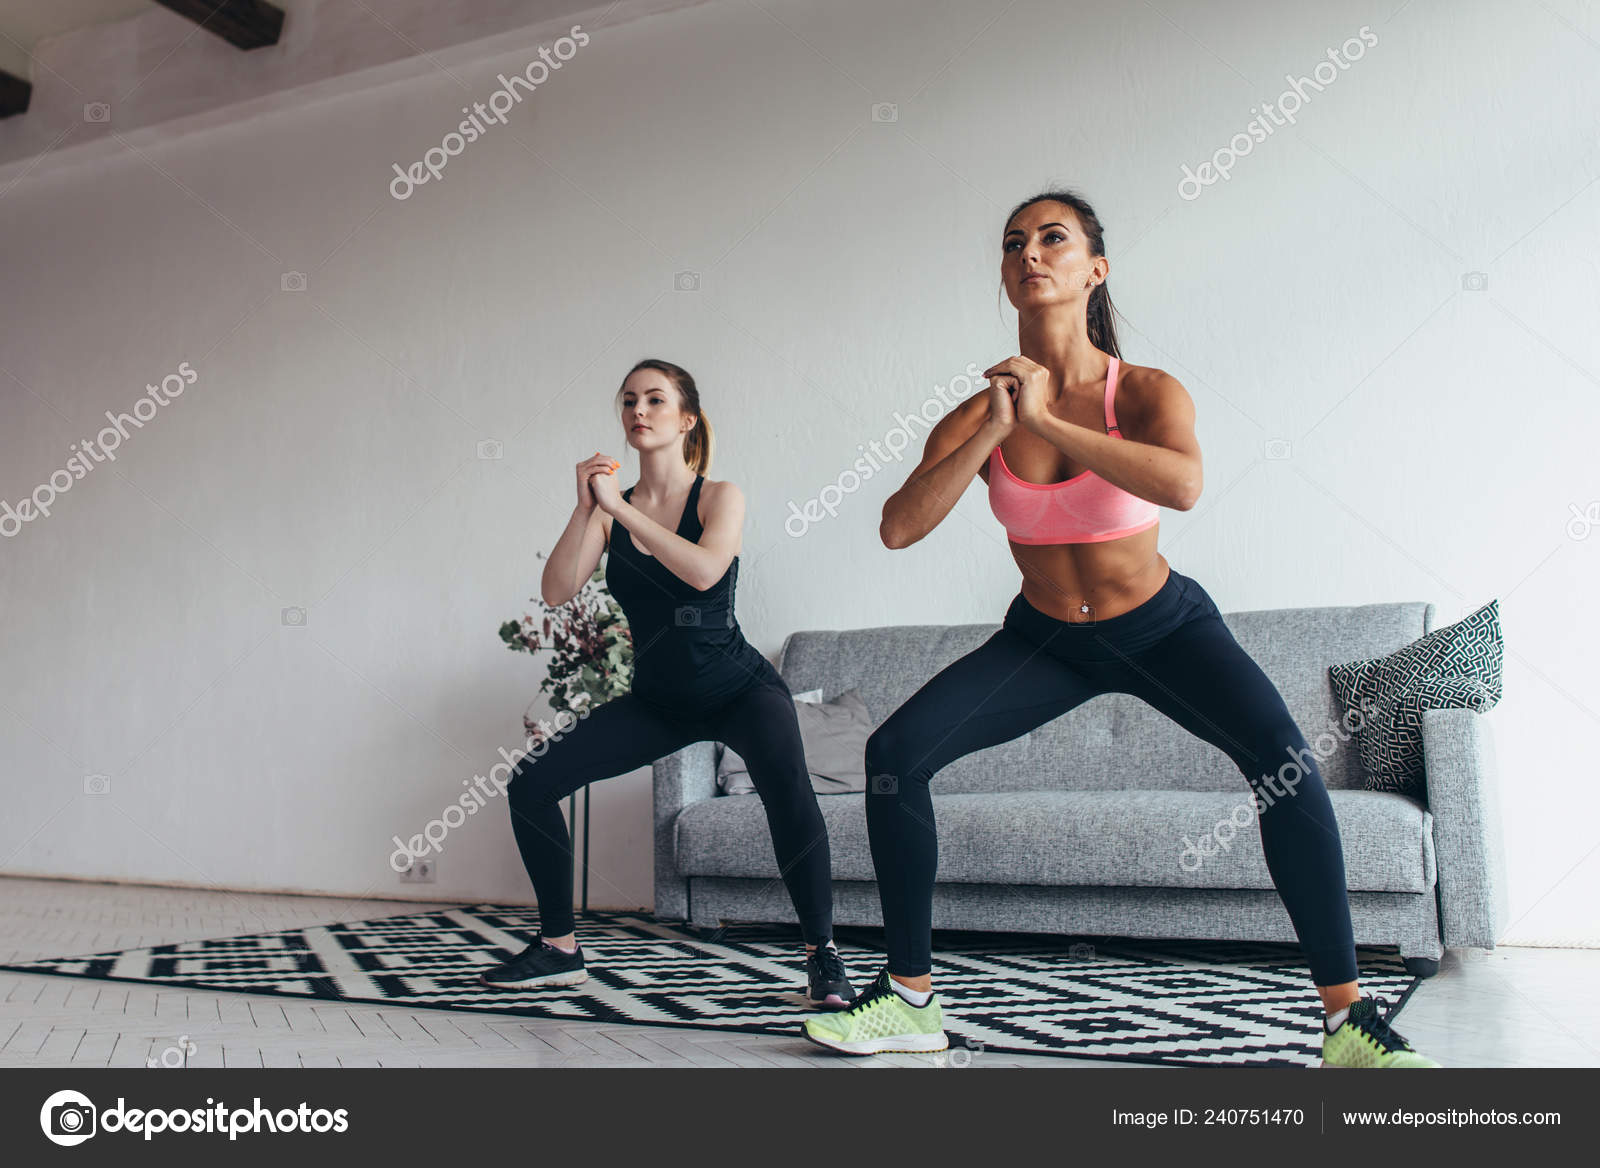 Two fit women exercising together doing squats at home